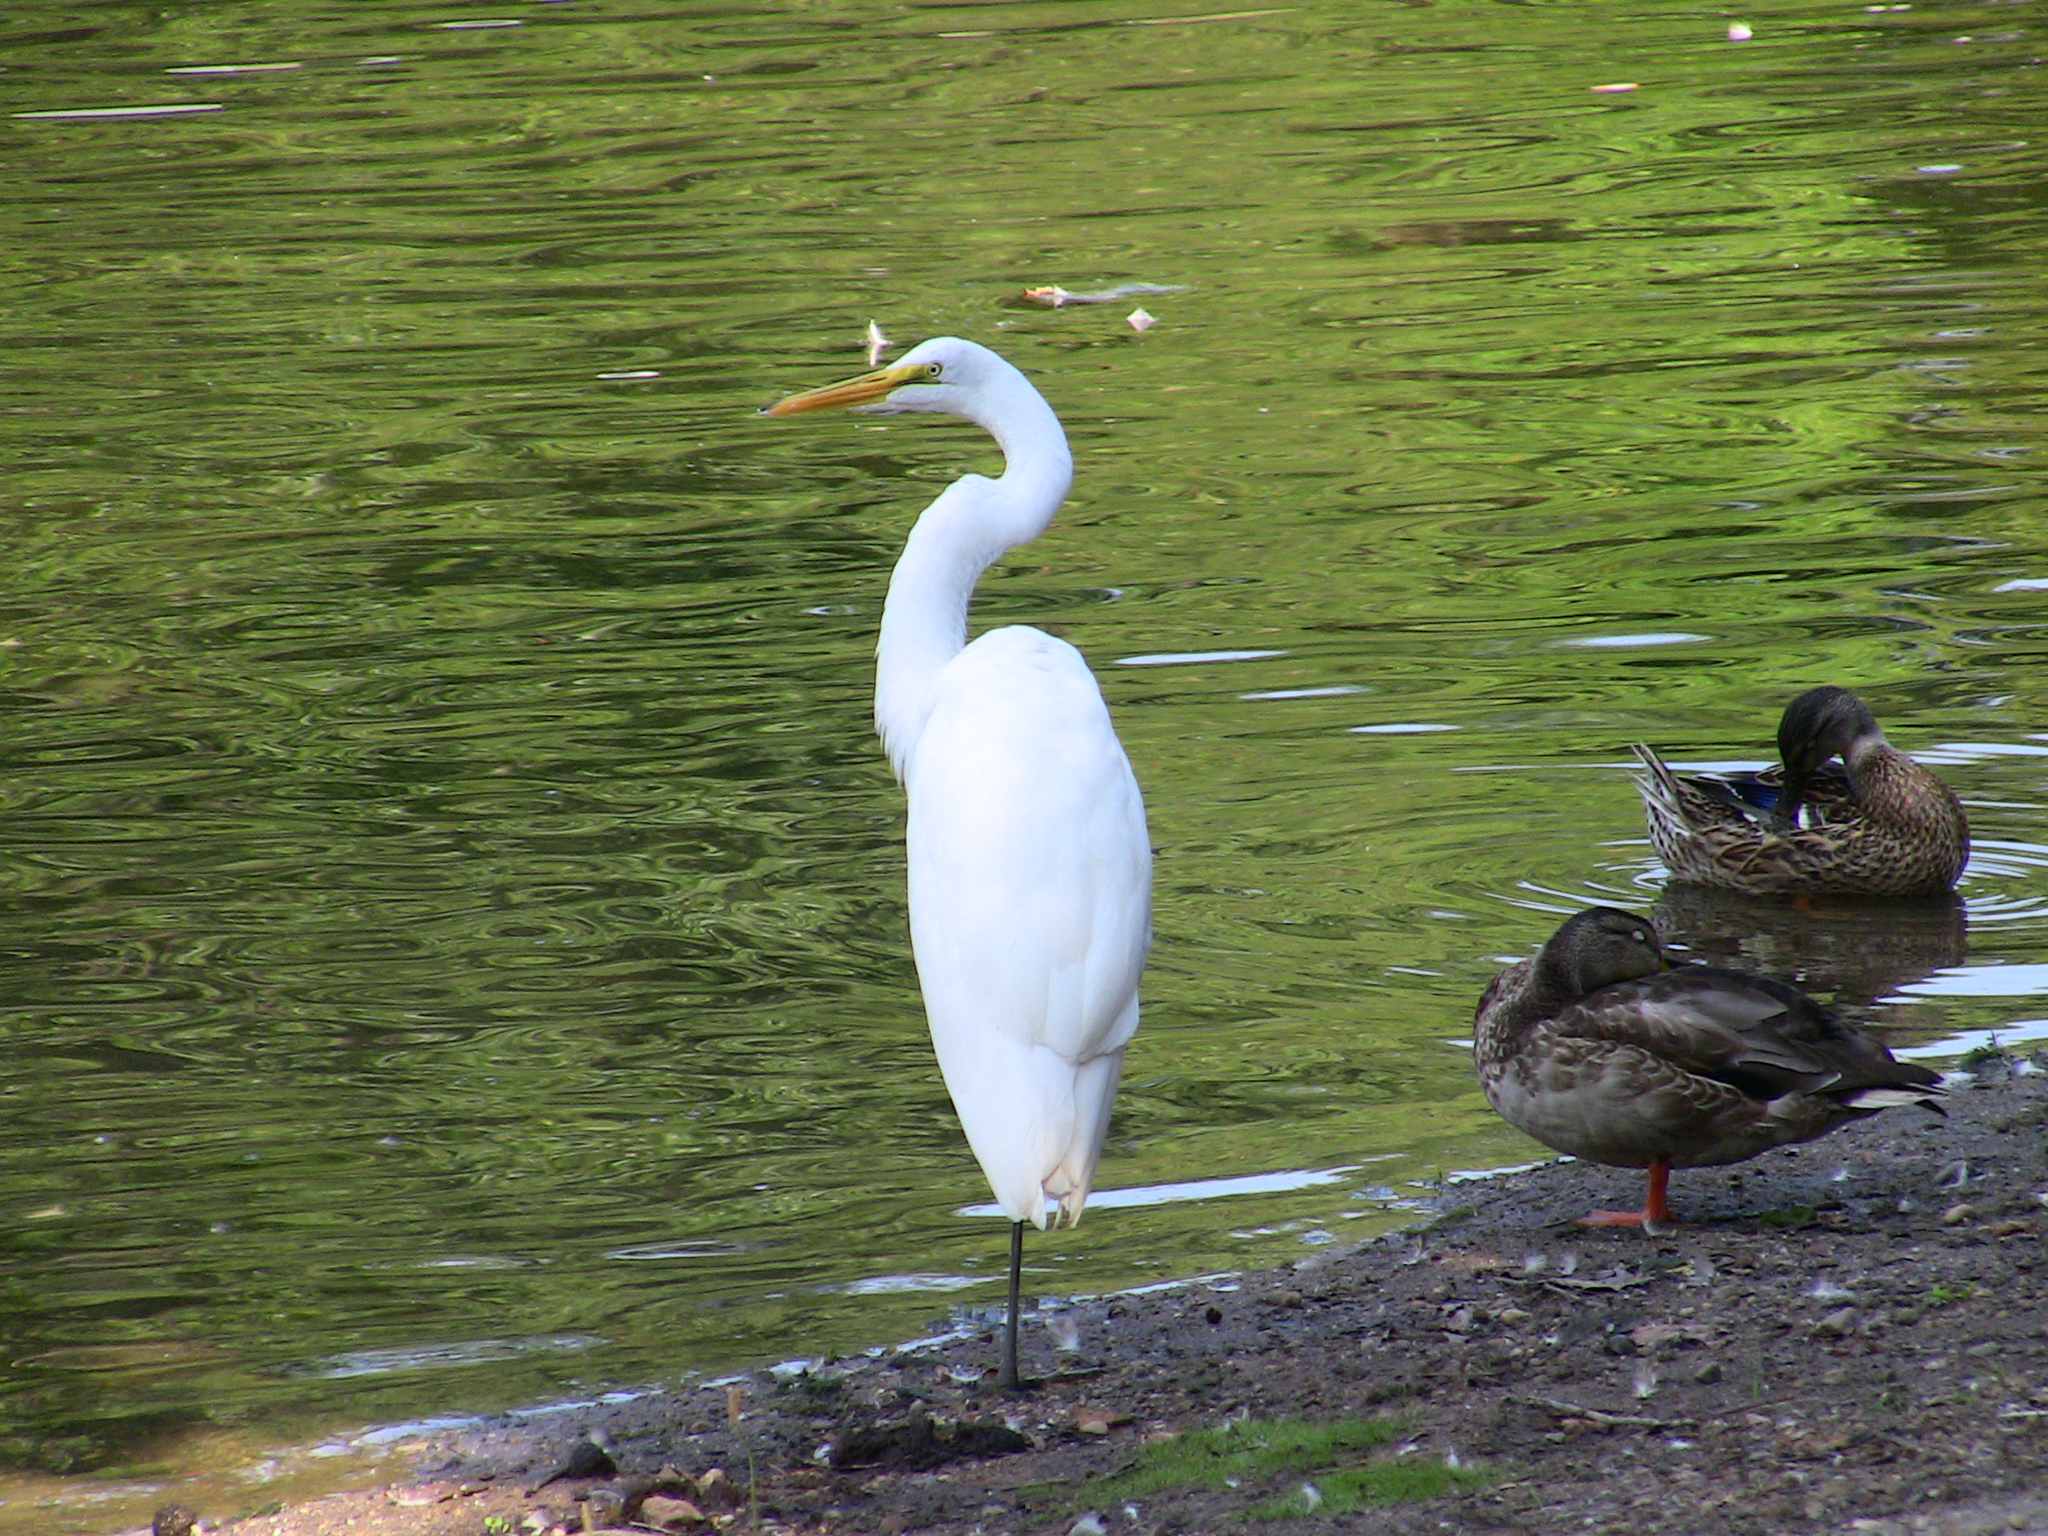 White crane bird - photo#10